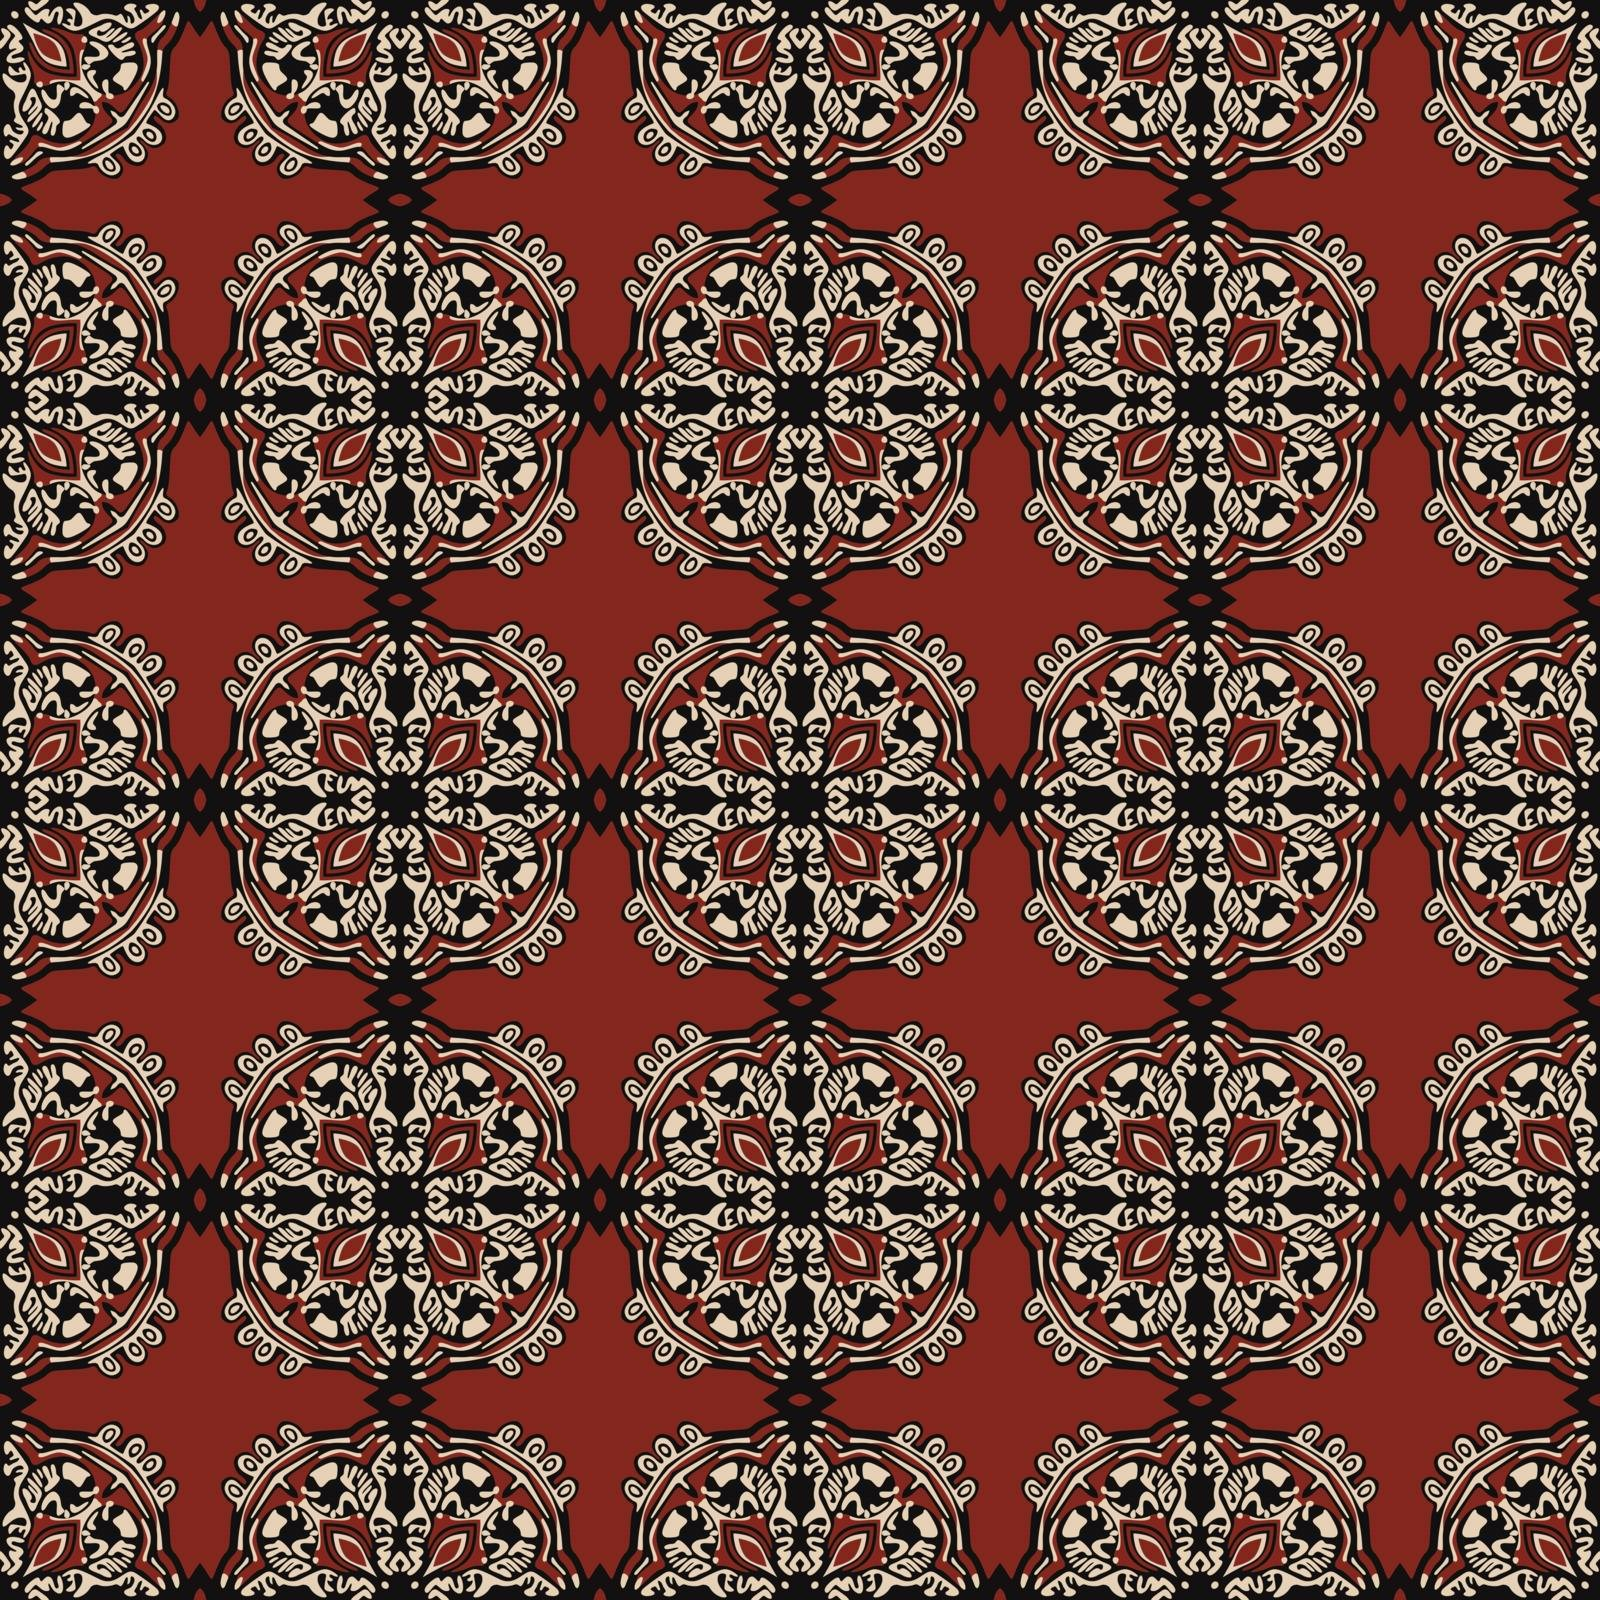 Seamless illustrated pattern made of abstract elements in beige,red and black